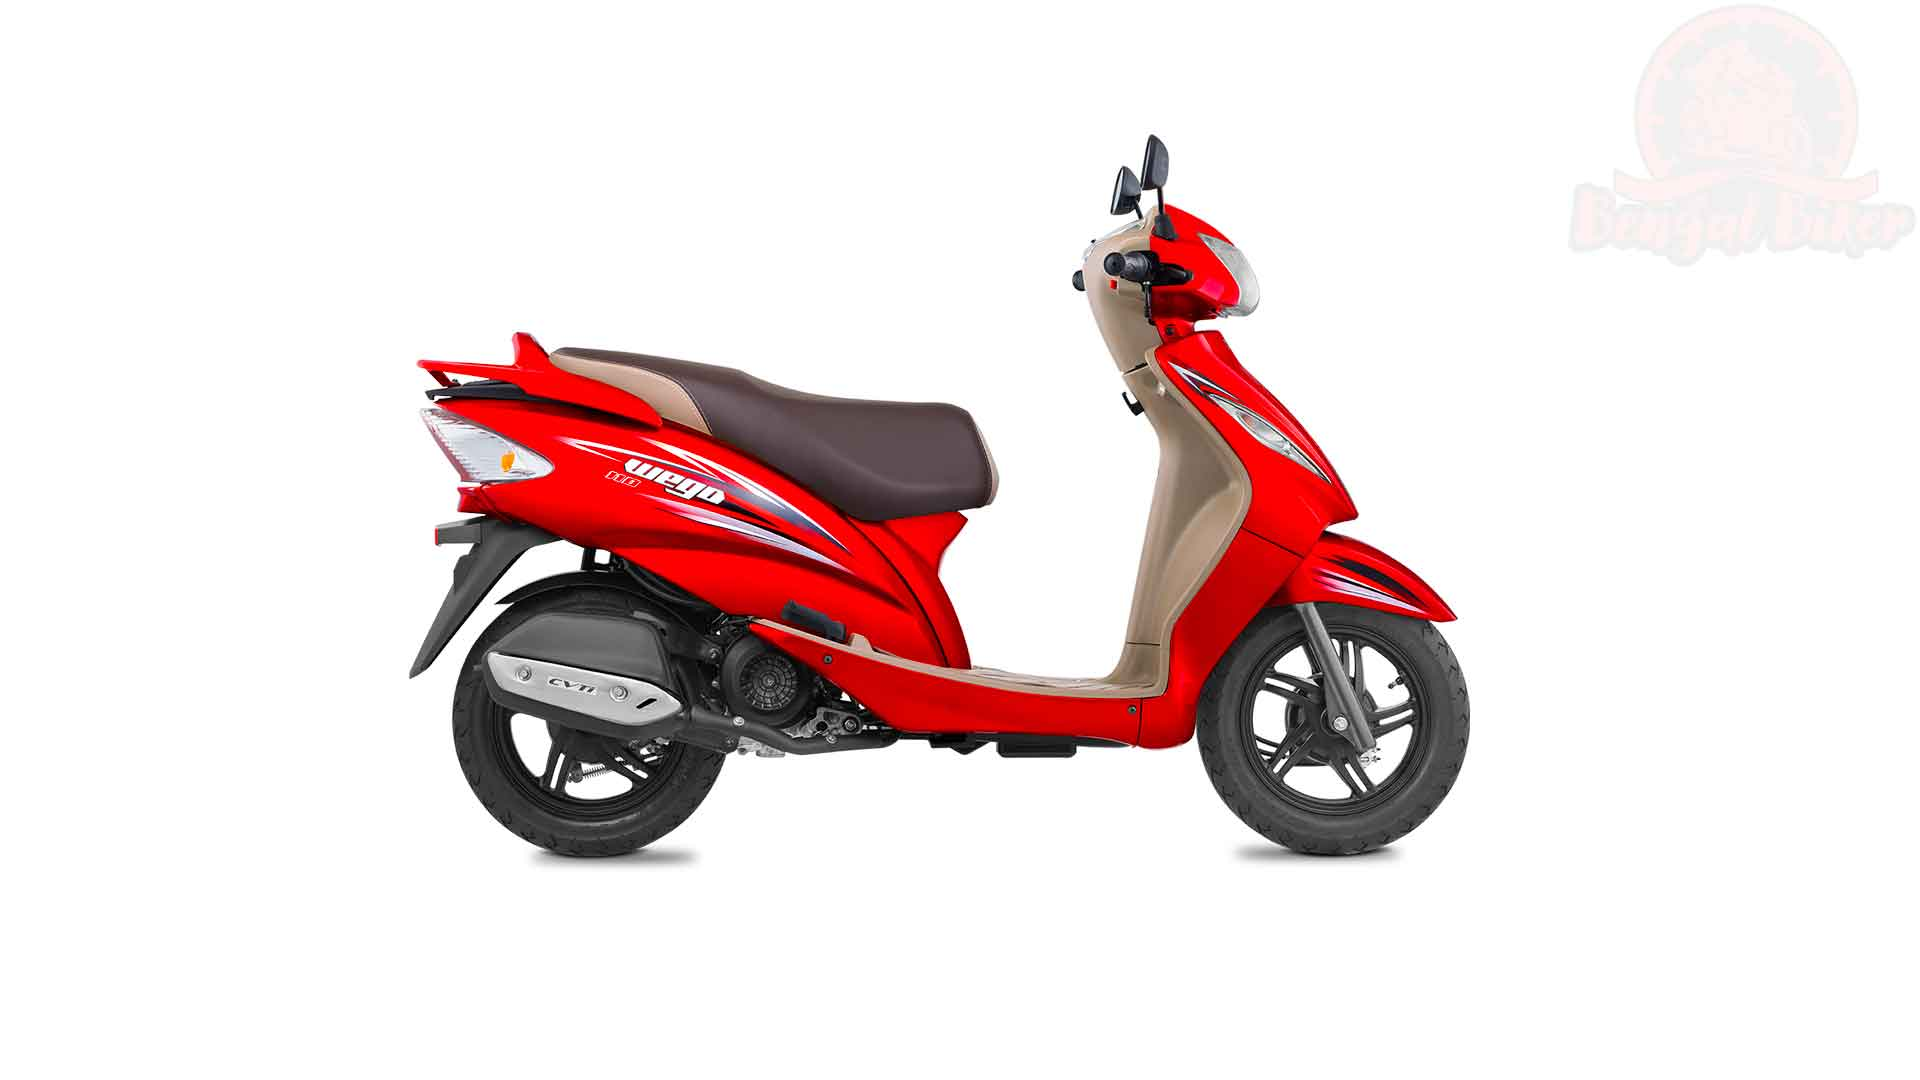 TVS Wego 110 Price in Bangladesh 2021